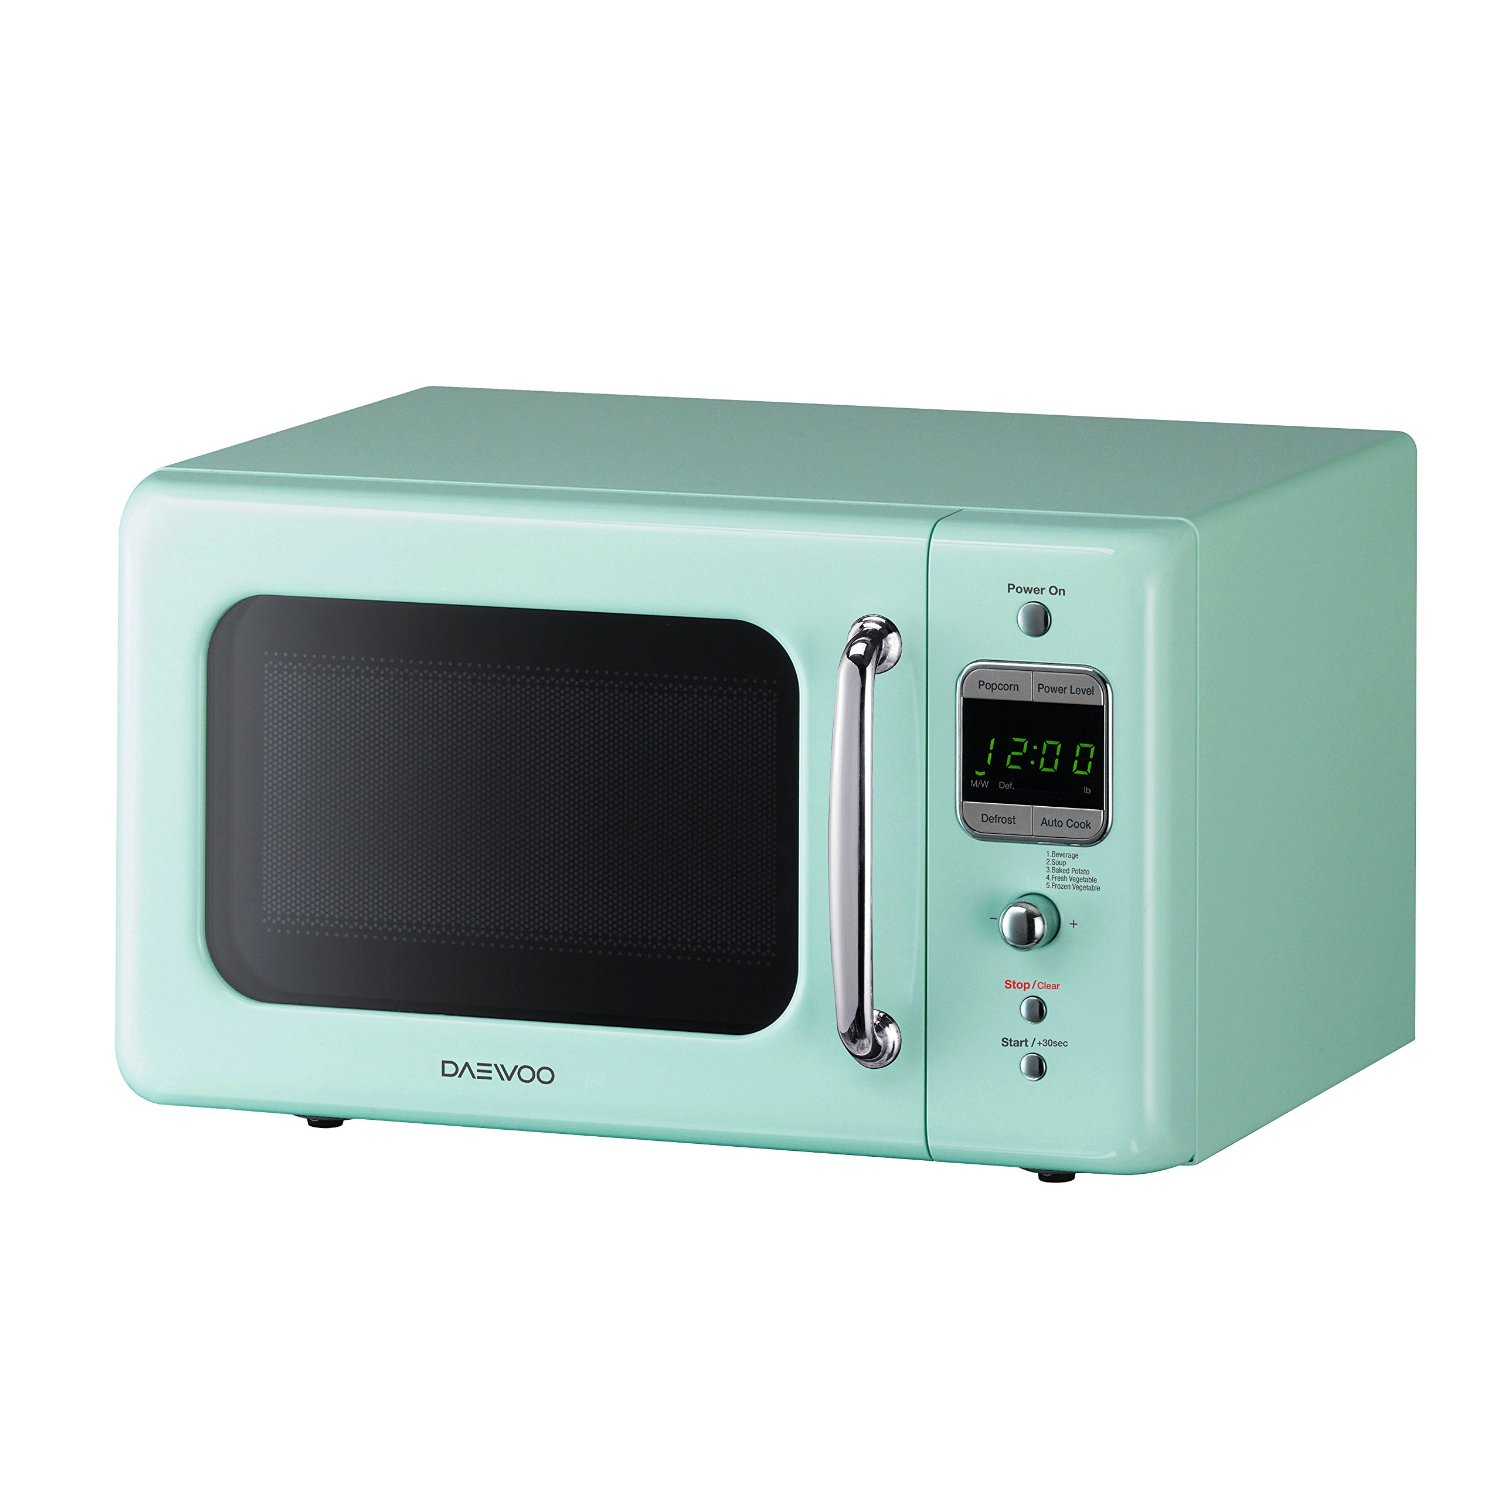 Magic Chef 0.7 Cu Ft Countertop Microwave Daewoo Retro Mint Green Microwave Oven Small 7 Cu Ft